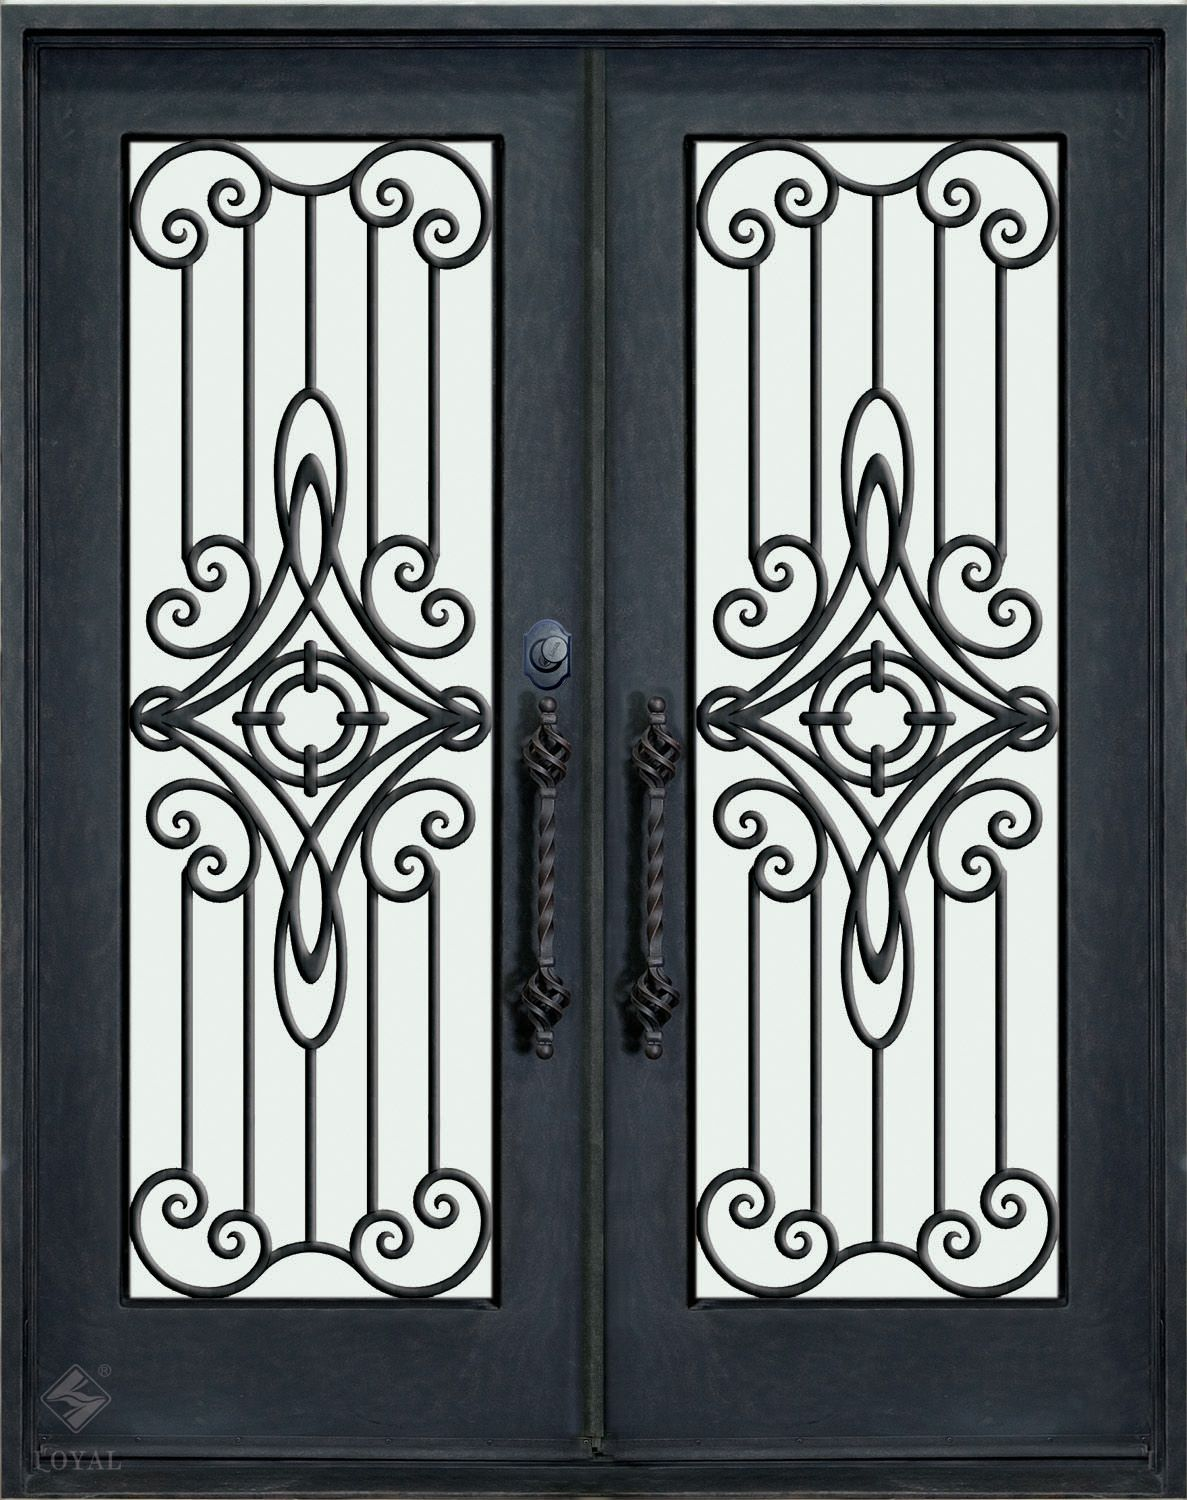 Iron double front doors las vegas - You Can Also Compare The Prices Of The Exemplary Wrought Iron Doors Once You Avail The Quotes Compare Them At Your Convenience To Get Installed In Your